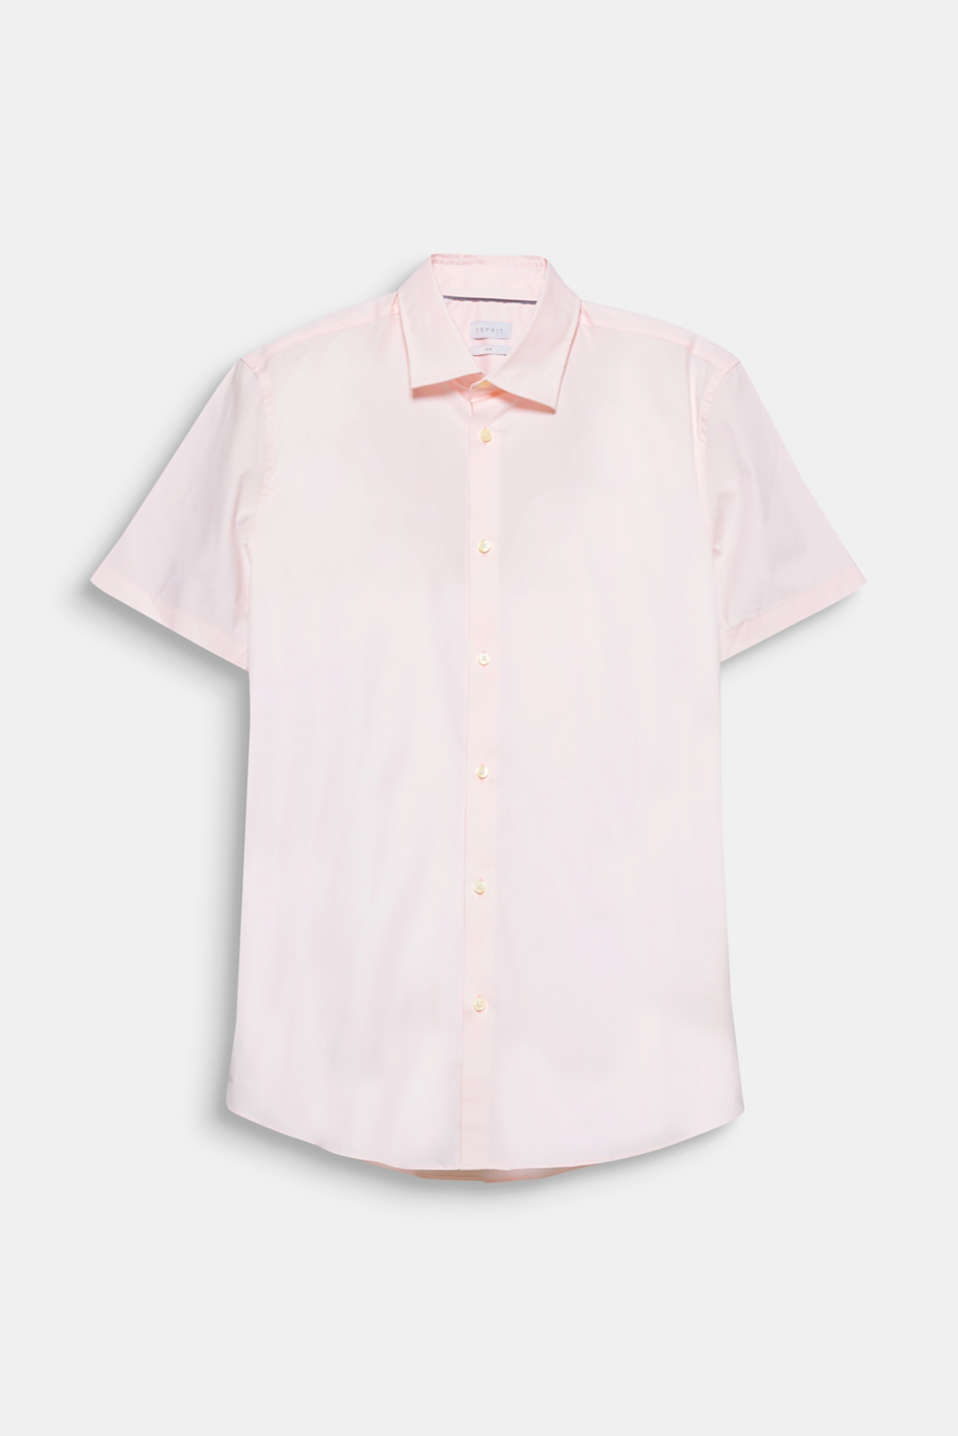 The perfect essential for your suit look when the temperatures go up: short sleeve shirt in 100% cotton.